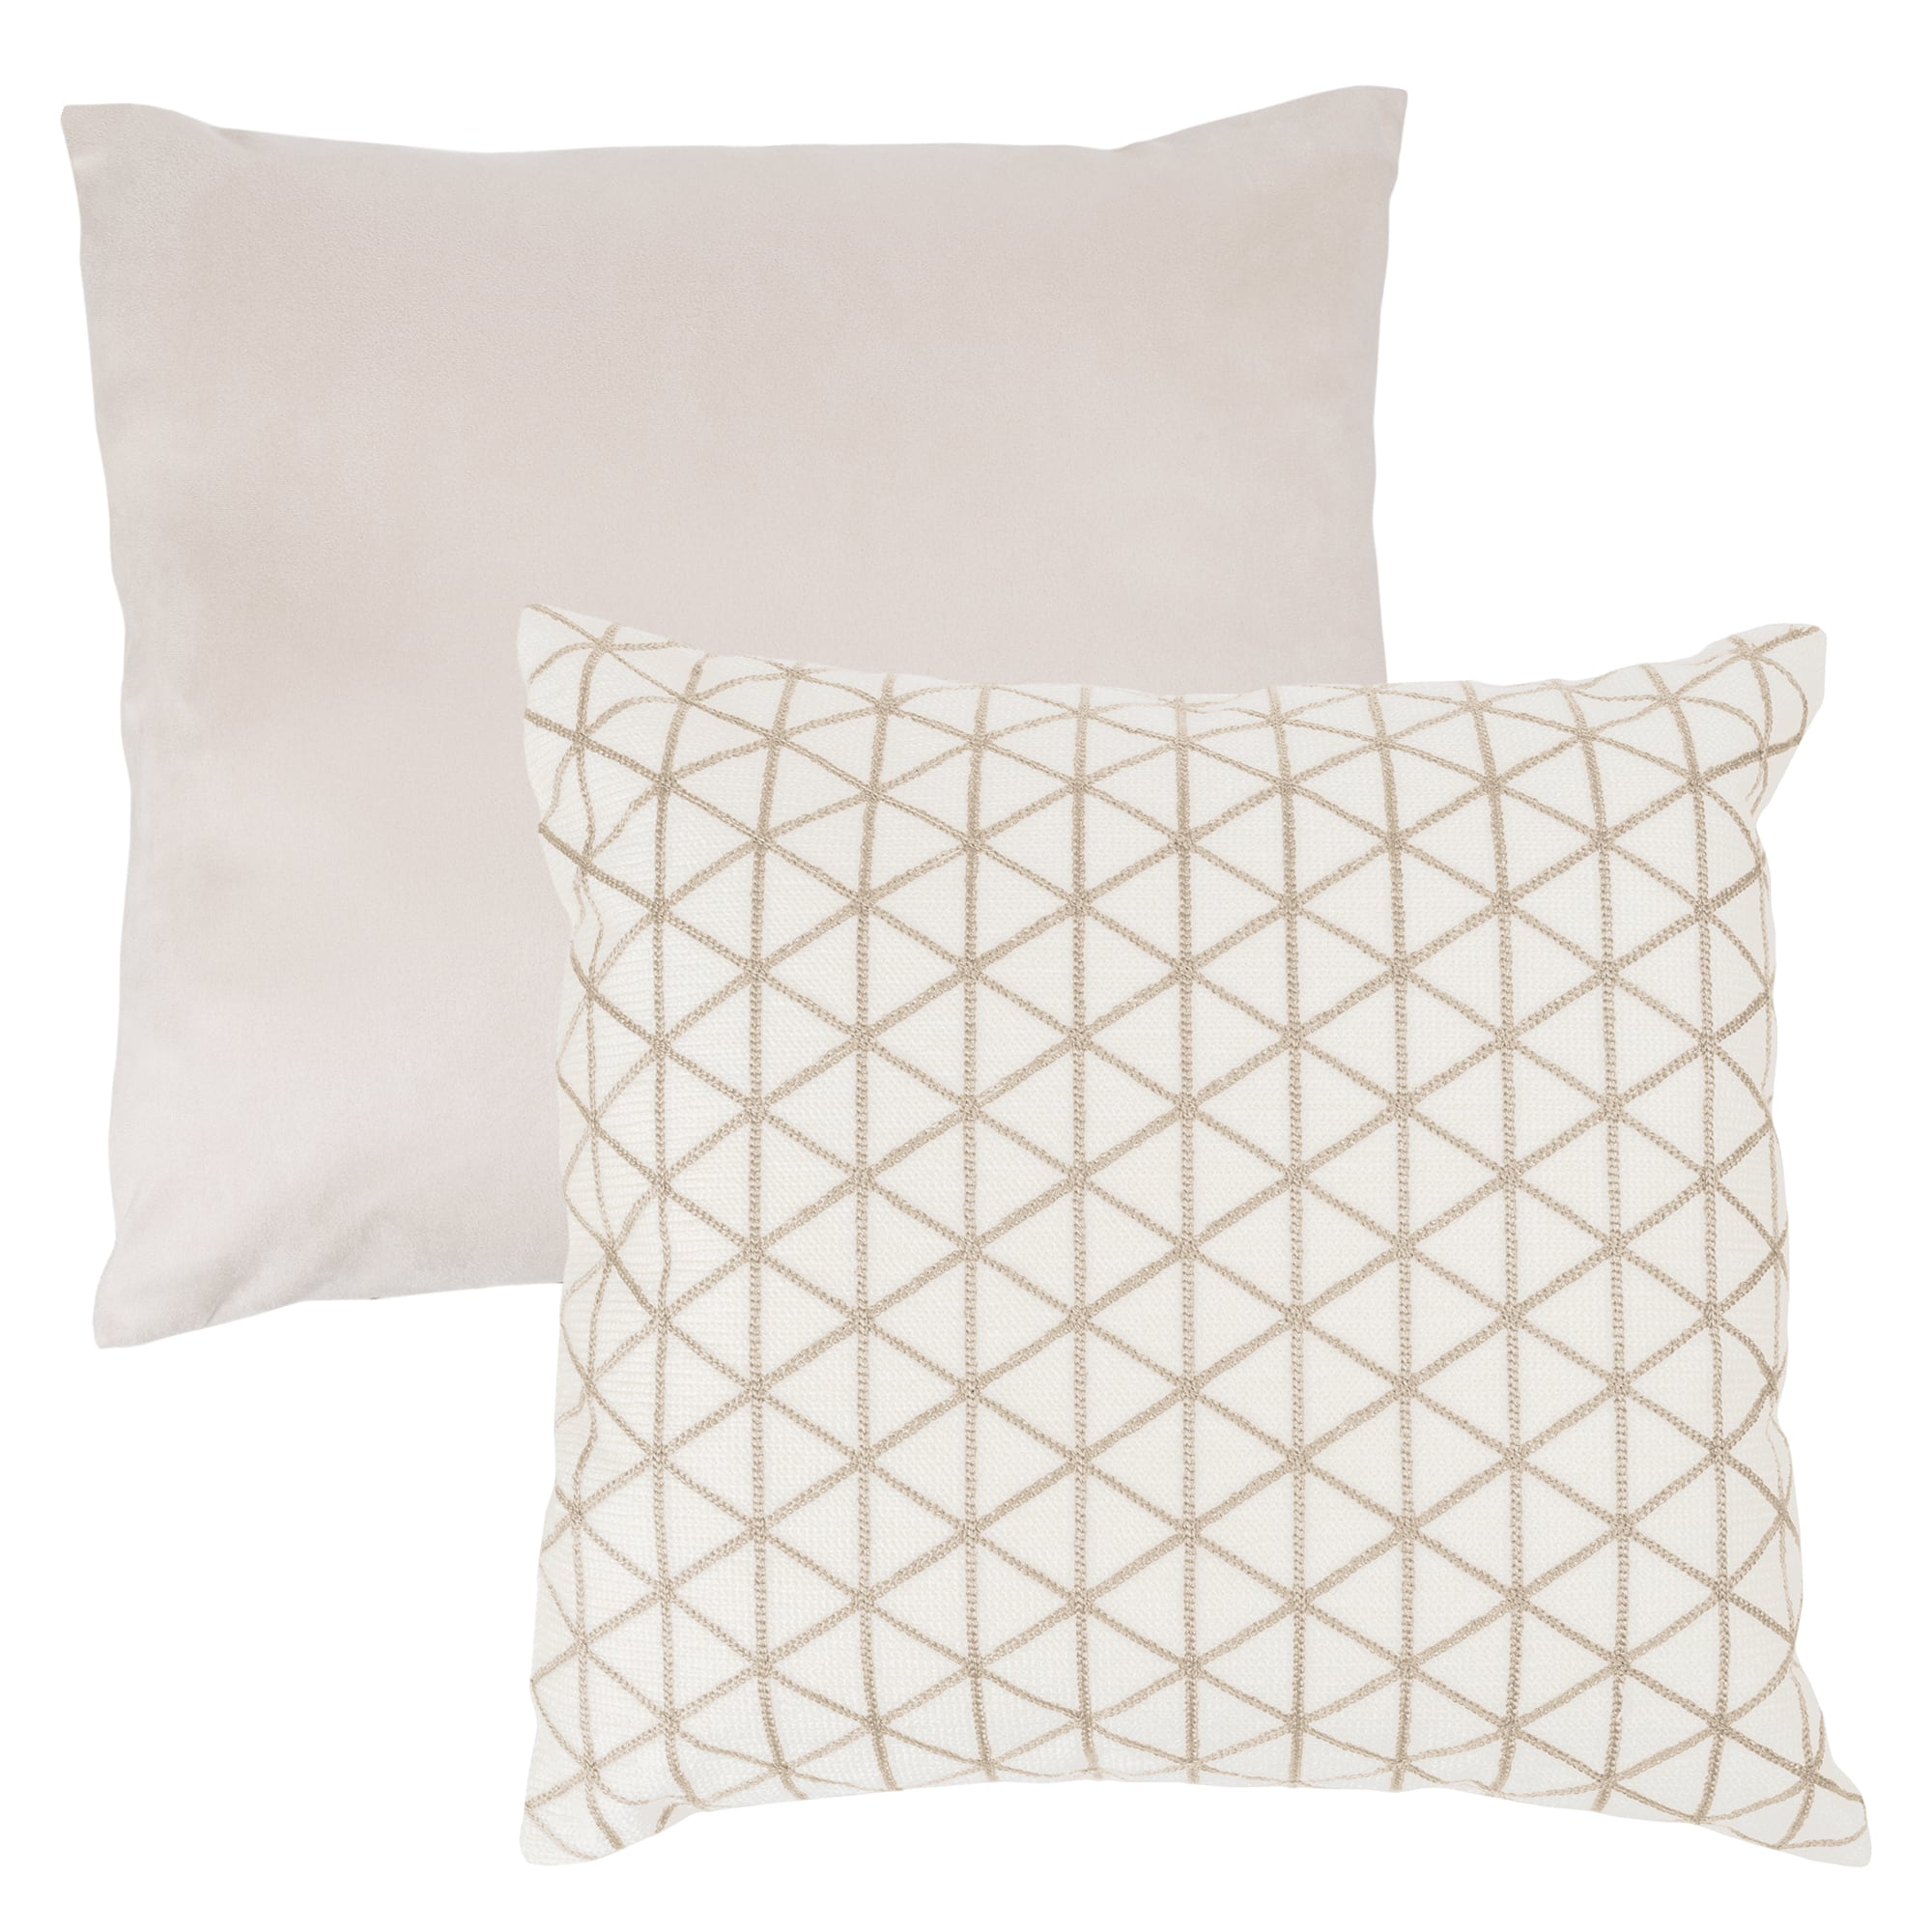 Throw Pillow Invisible Zipper : Throw Pillows For Less Overstock.com